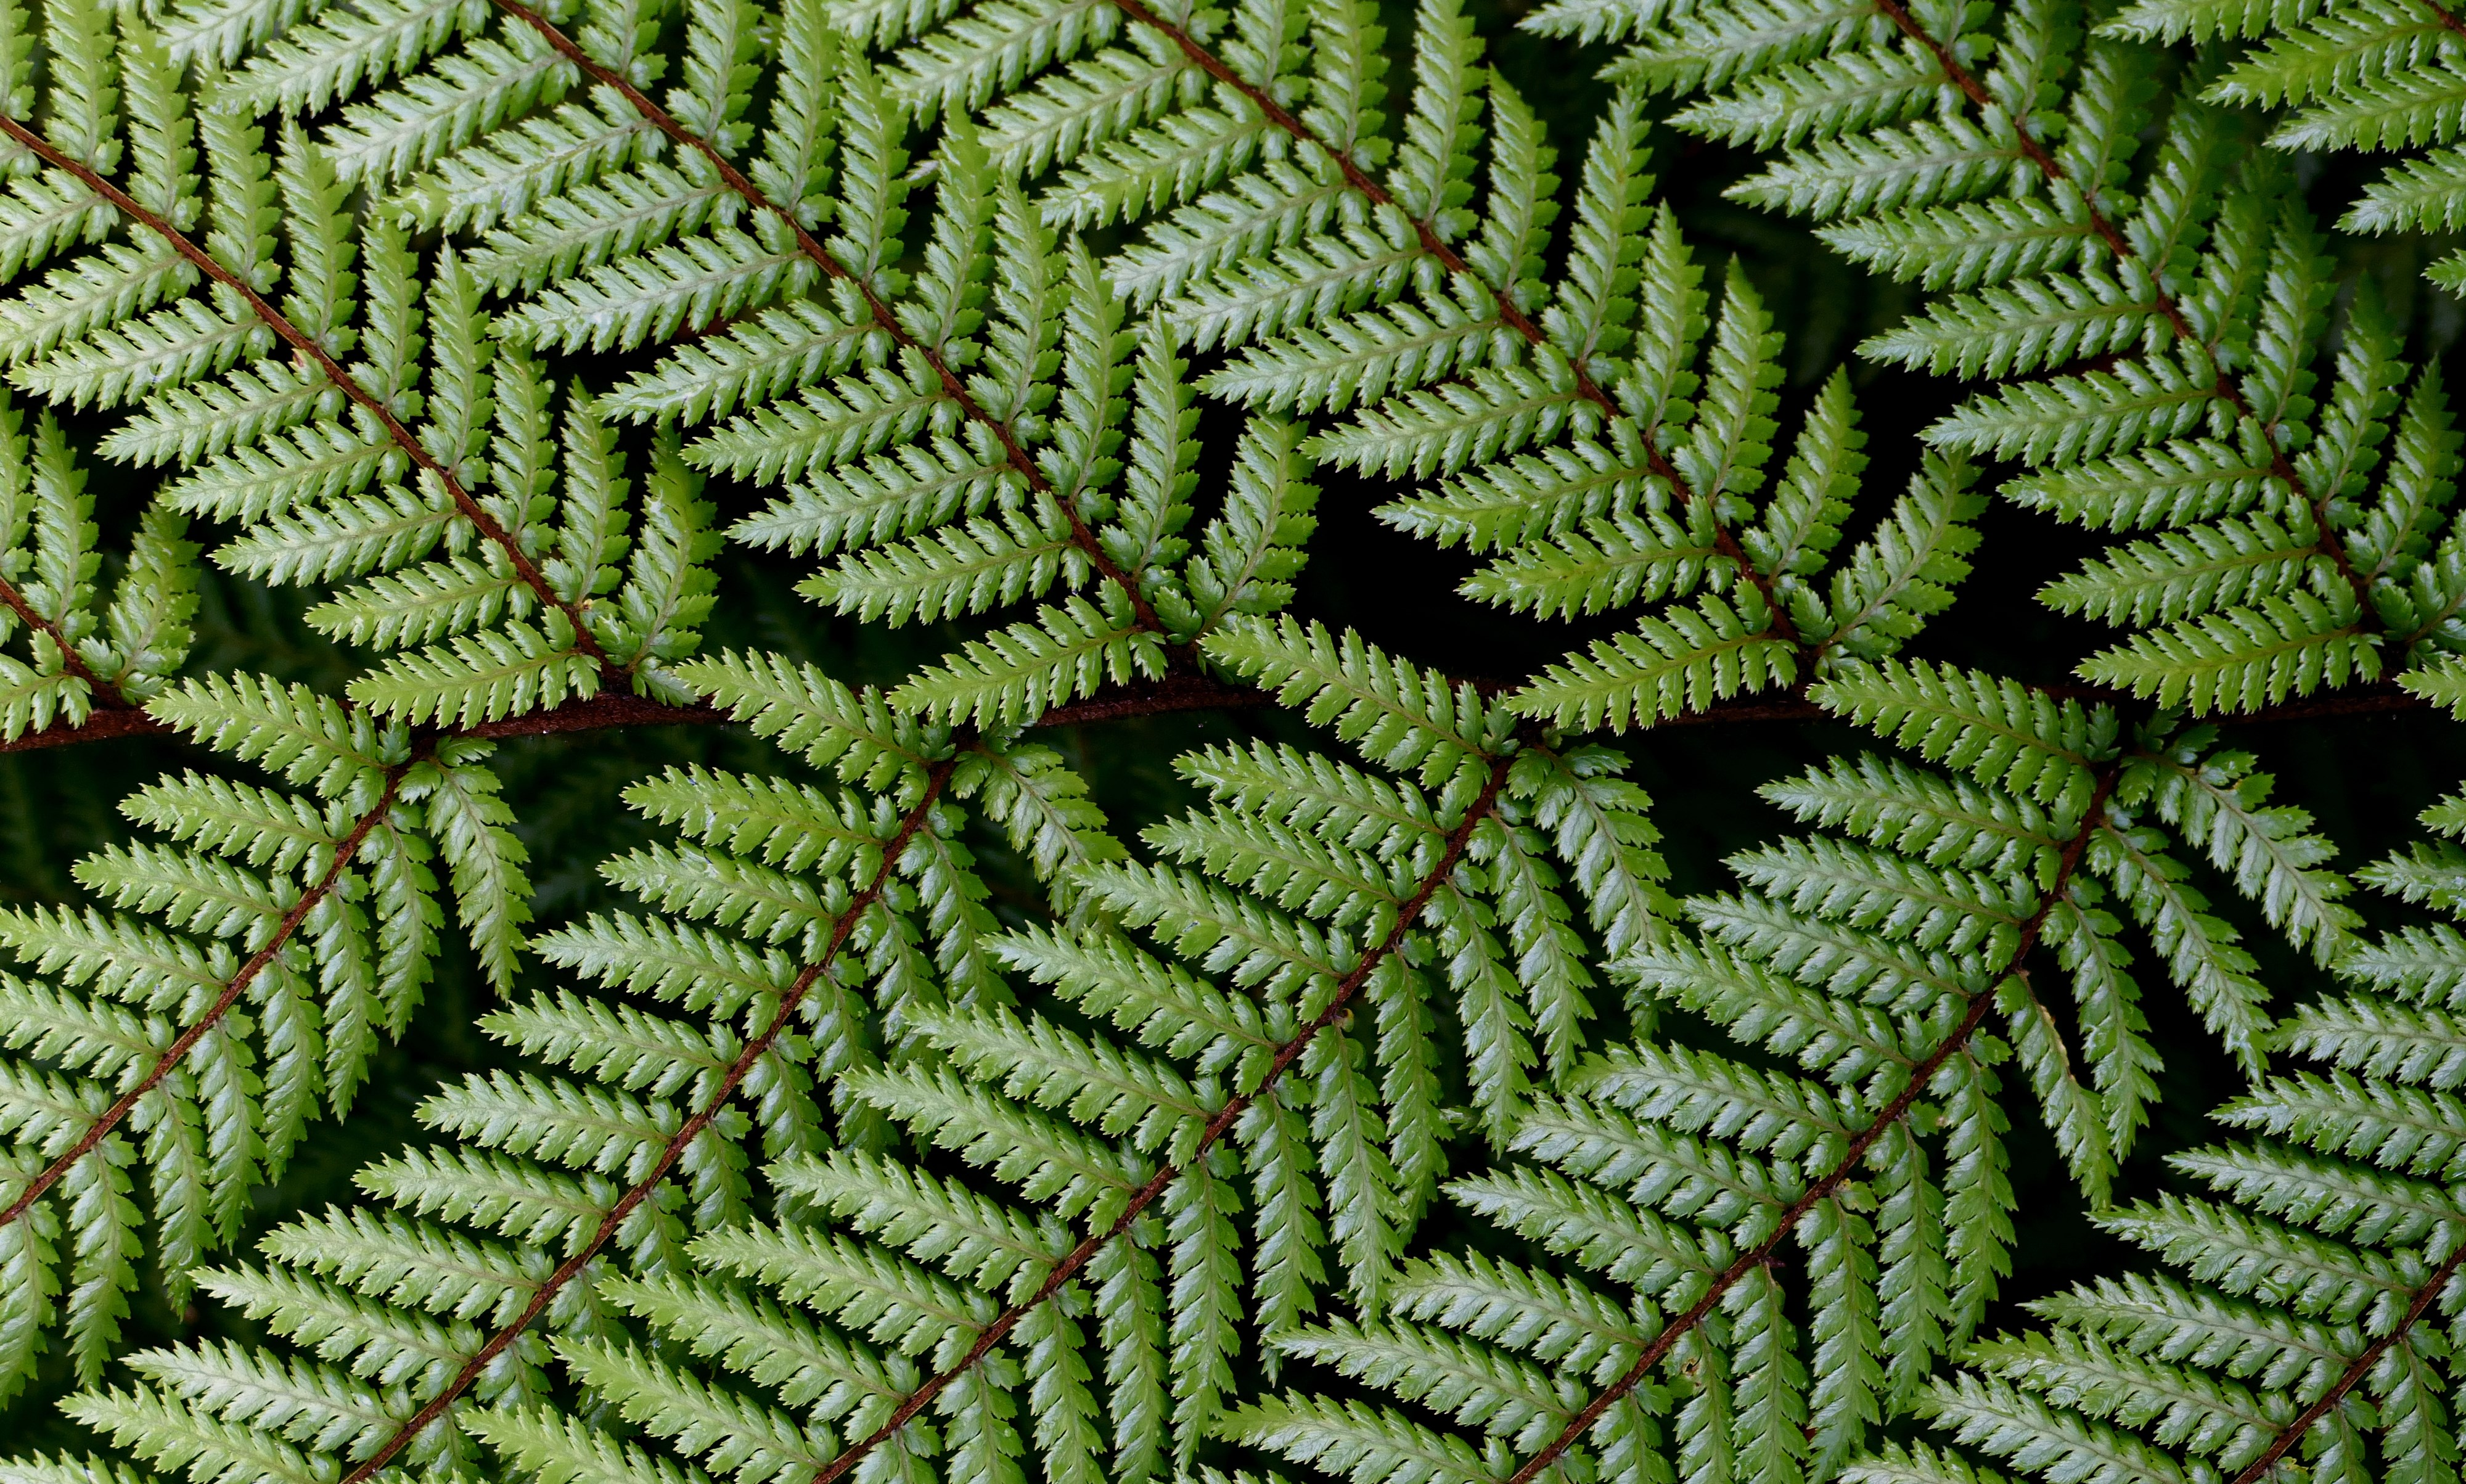 Fern 4k Ultra Hd Wallpaper High Quality Walls